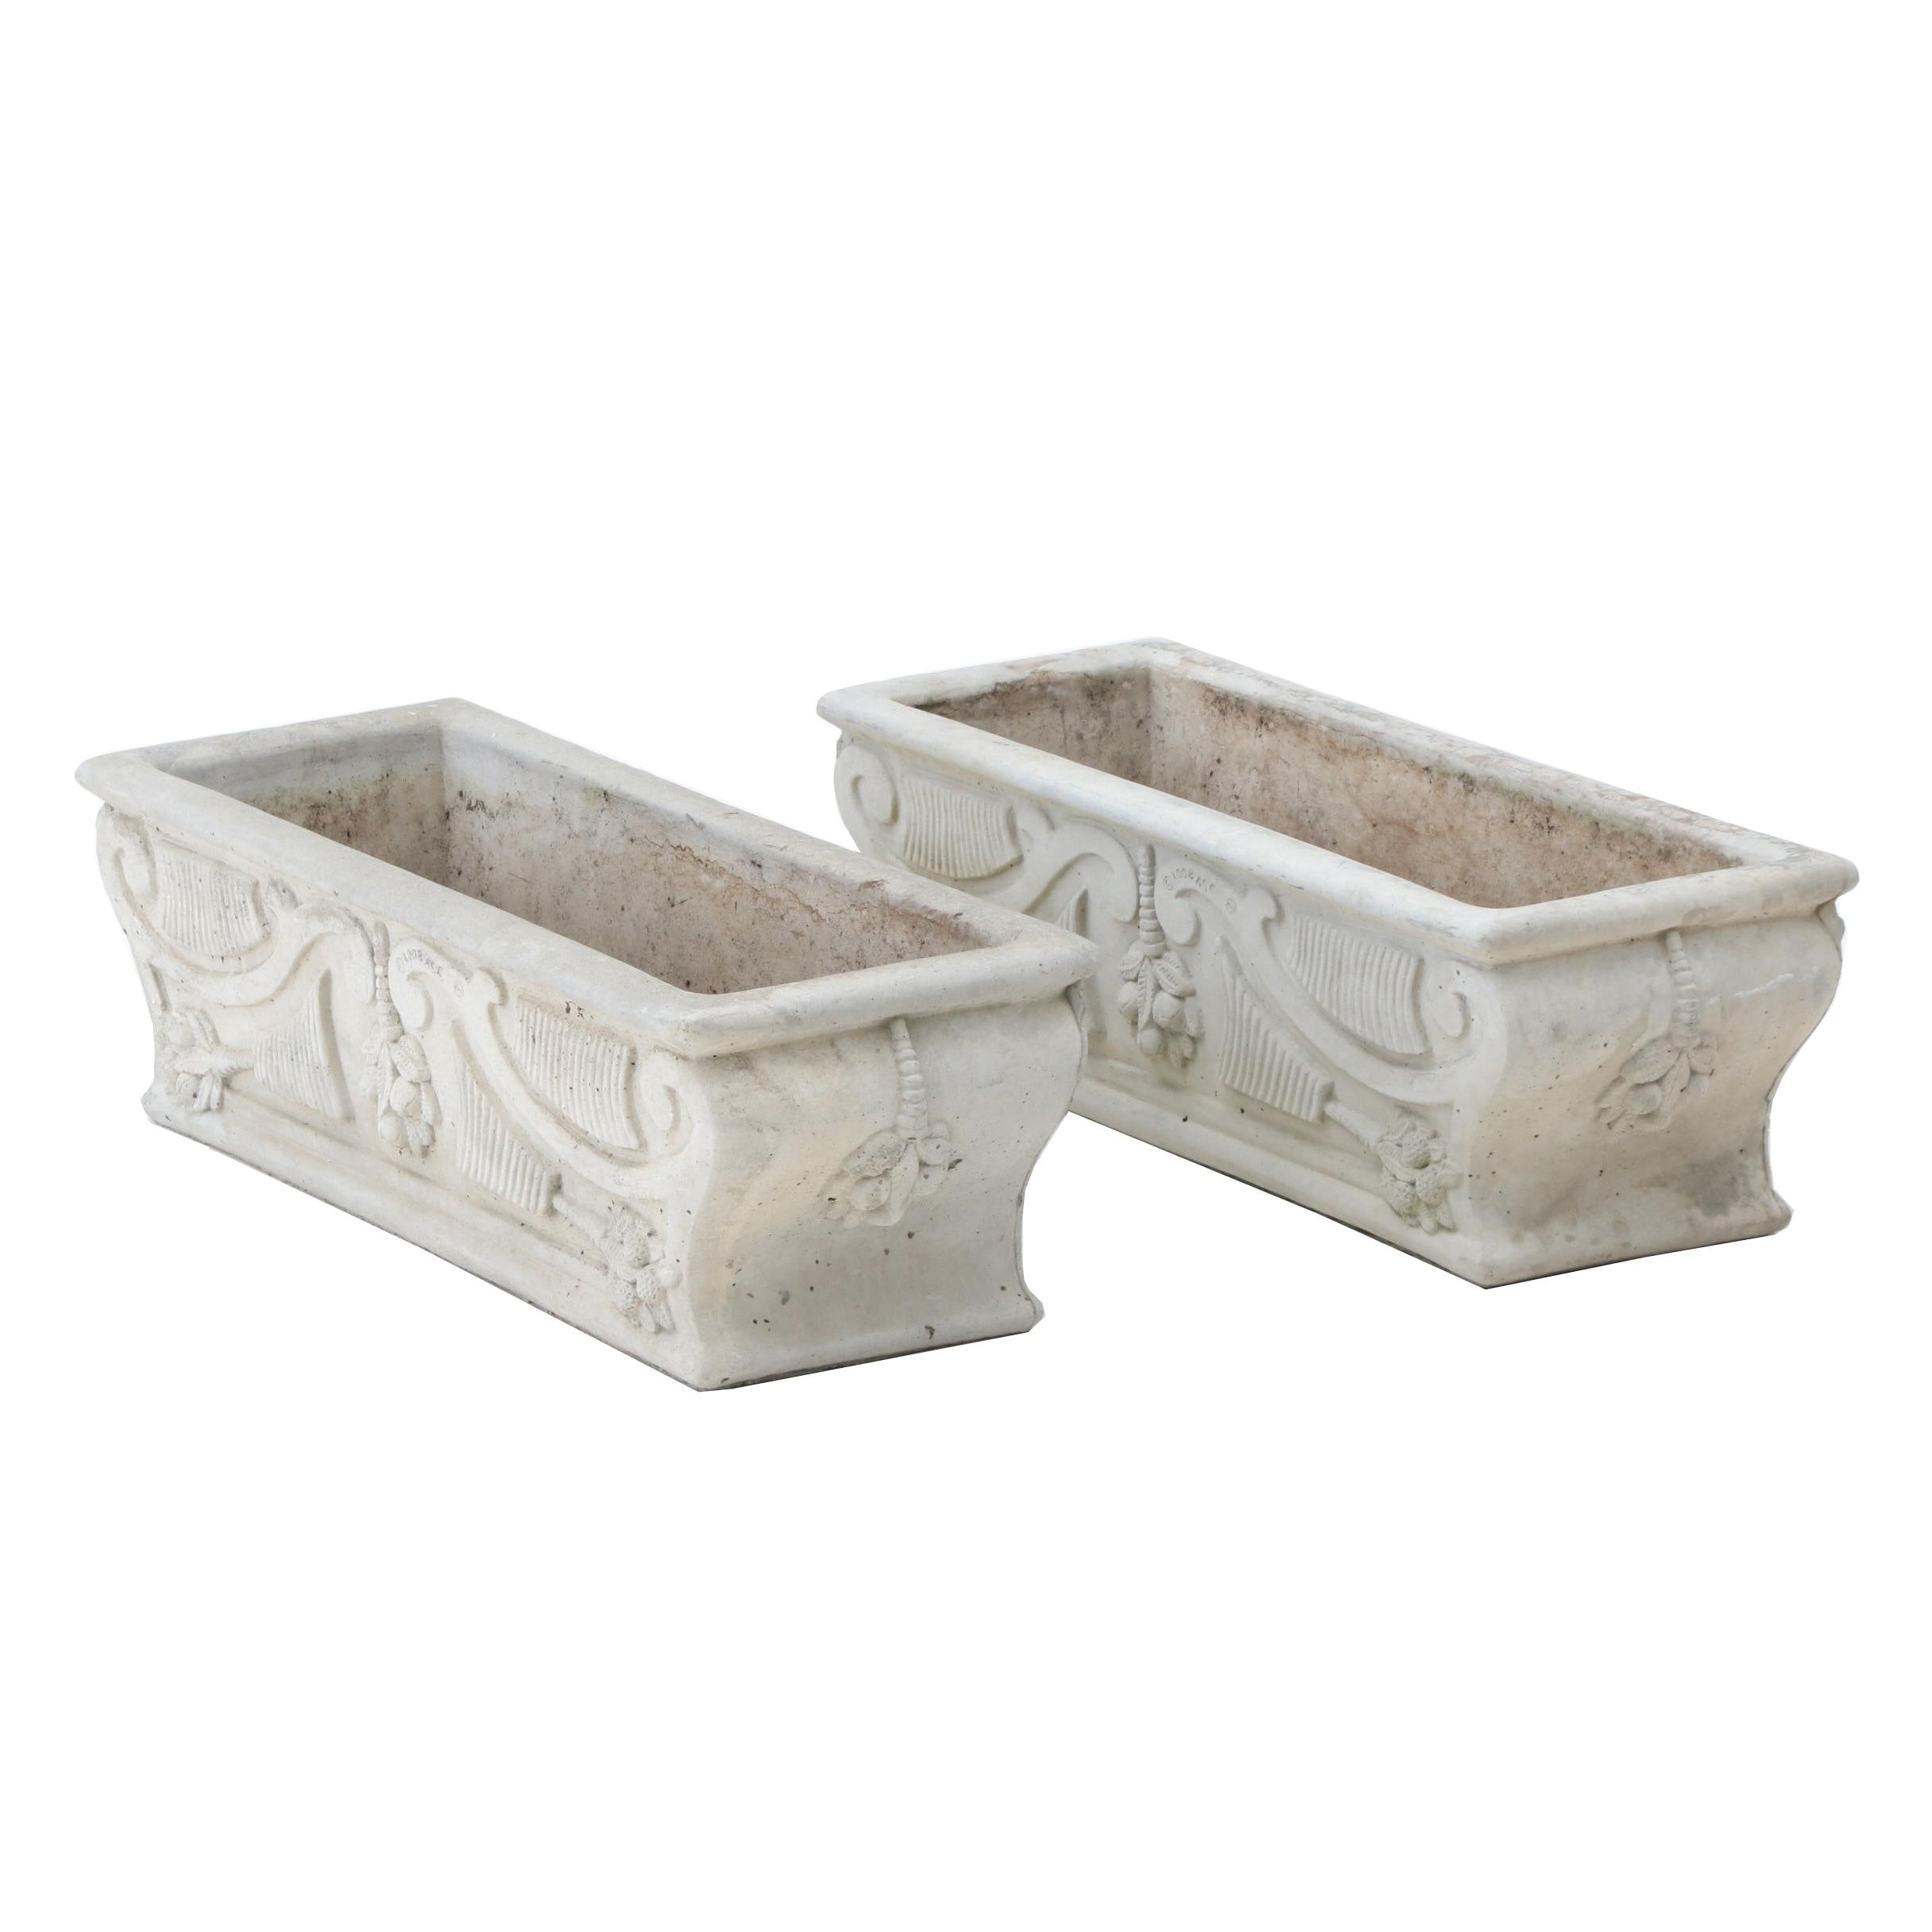 Pair of Concrete Grecian Style Rectangle Planters